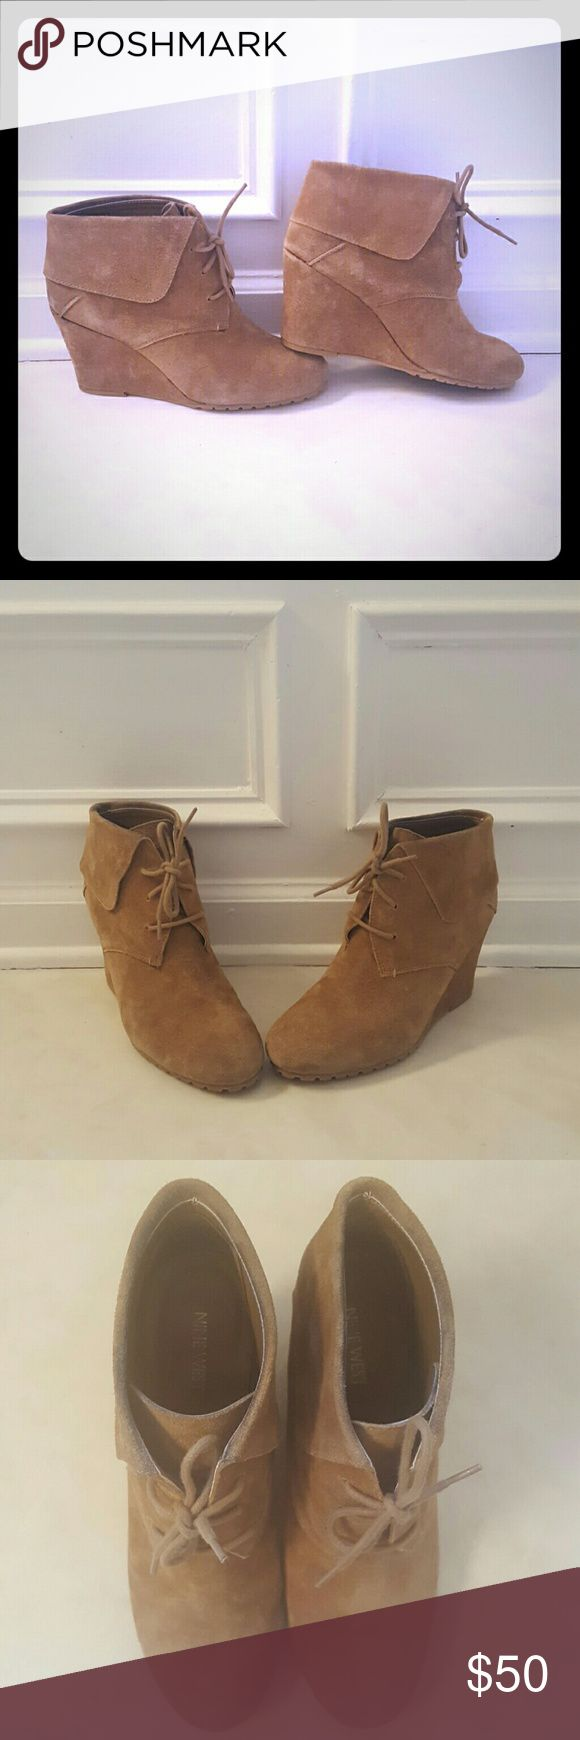 Nine West Wedge Ankle Boots Tan color wedge ankle boots Nine West Shoes Ankle Boots & Booties